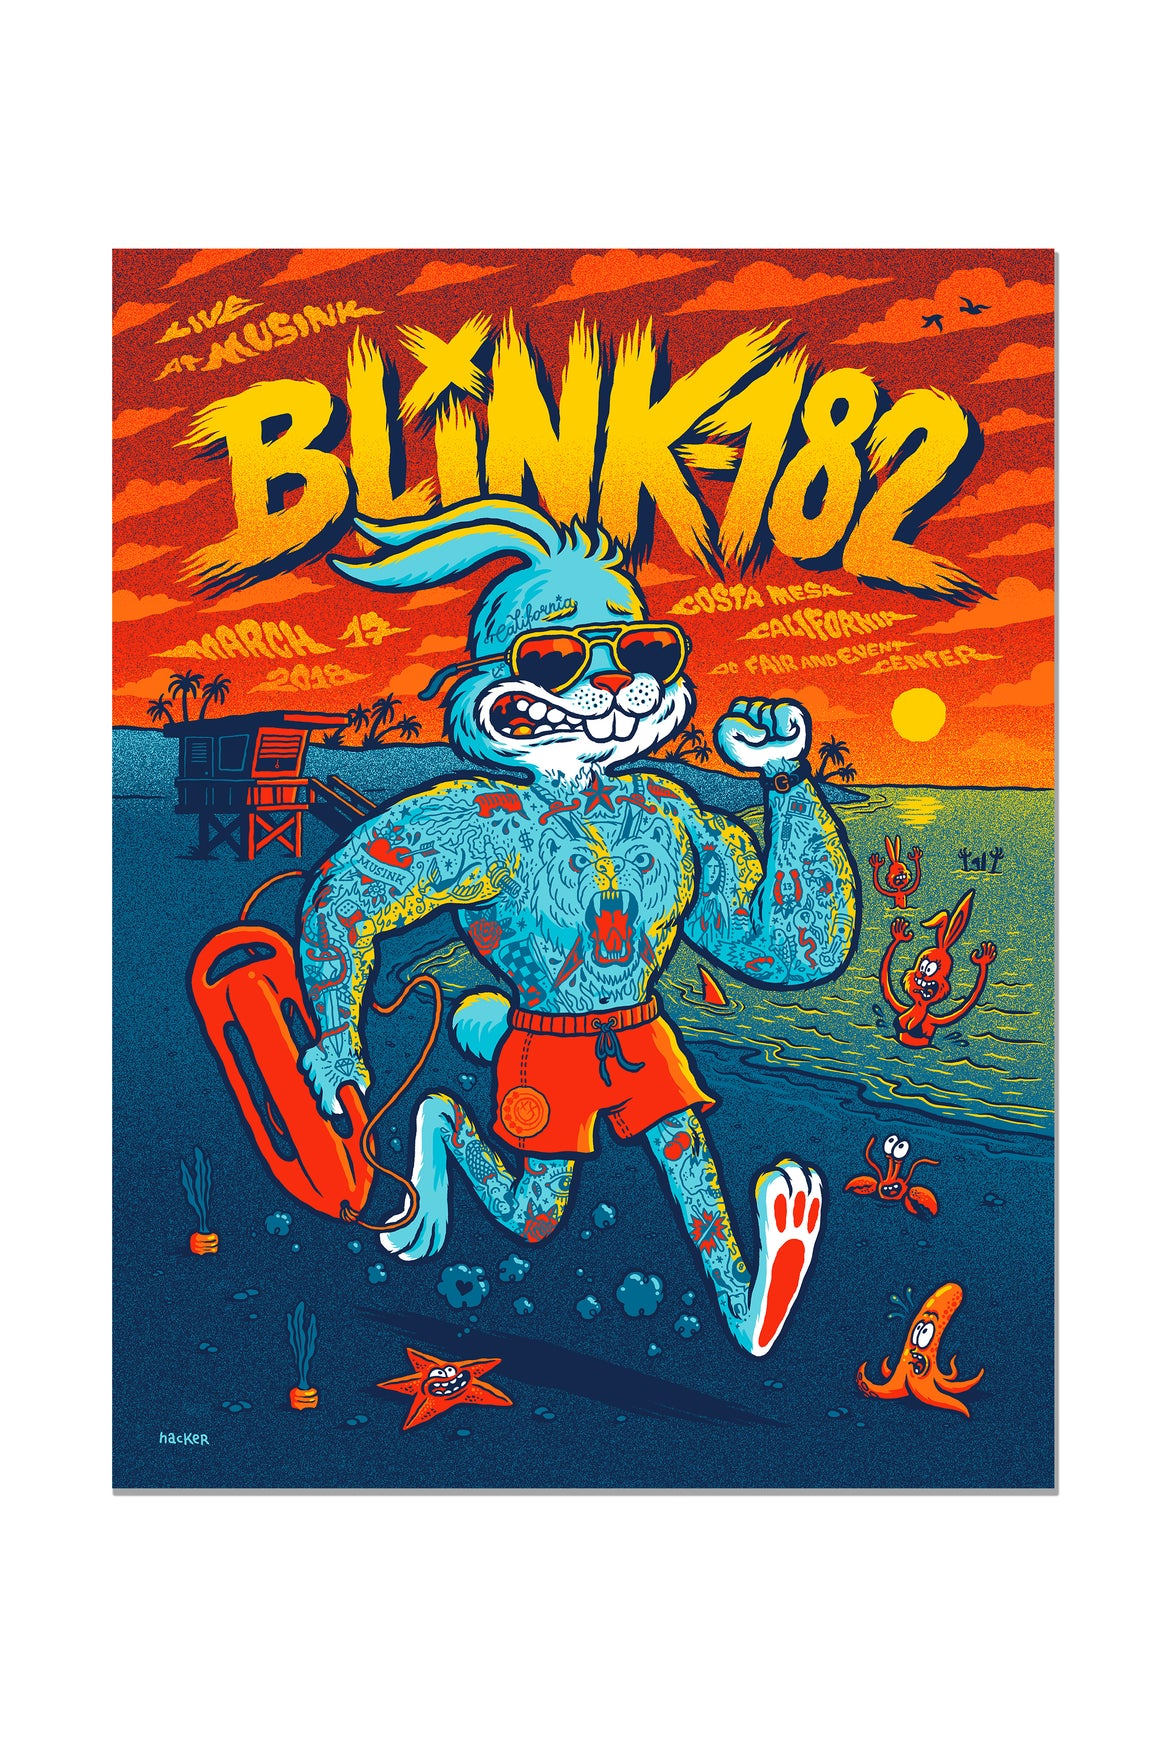 blink-182 03/17/2018 Costa Mesa, CA Event Poster